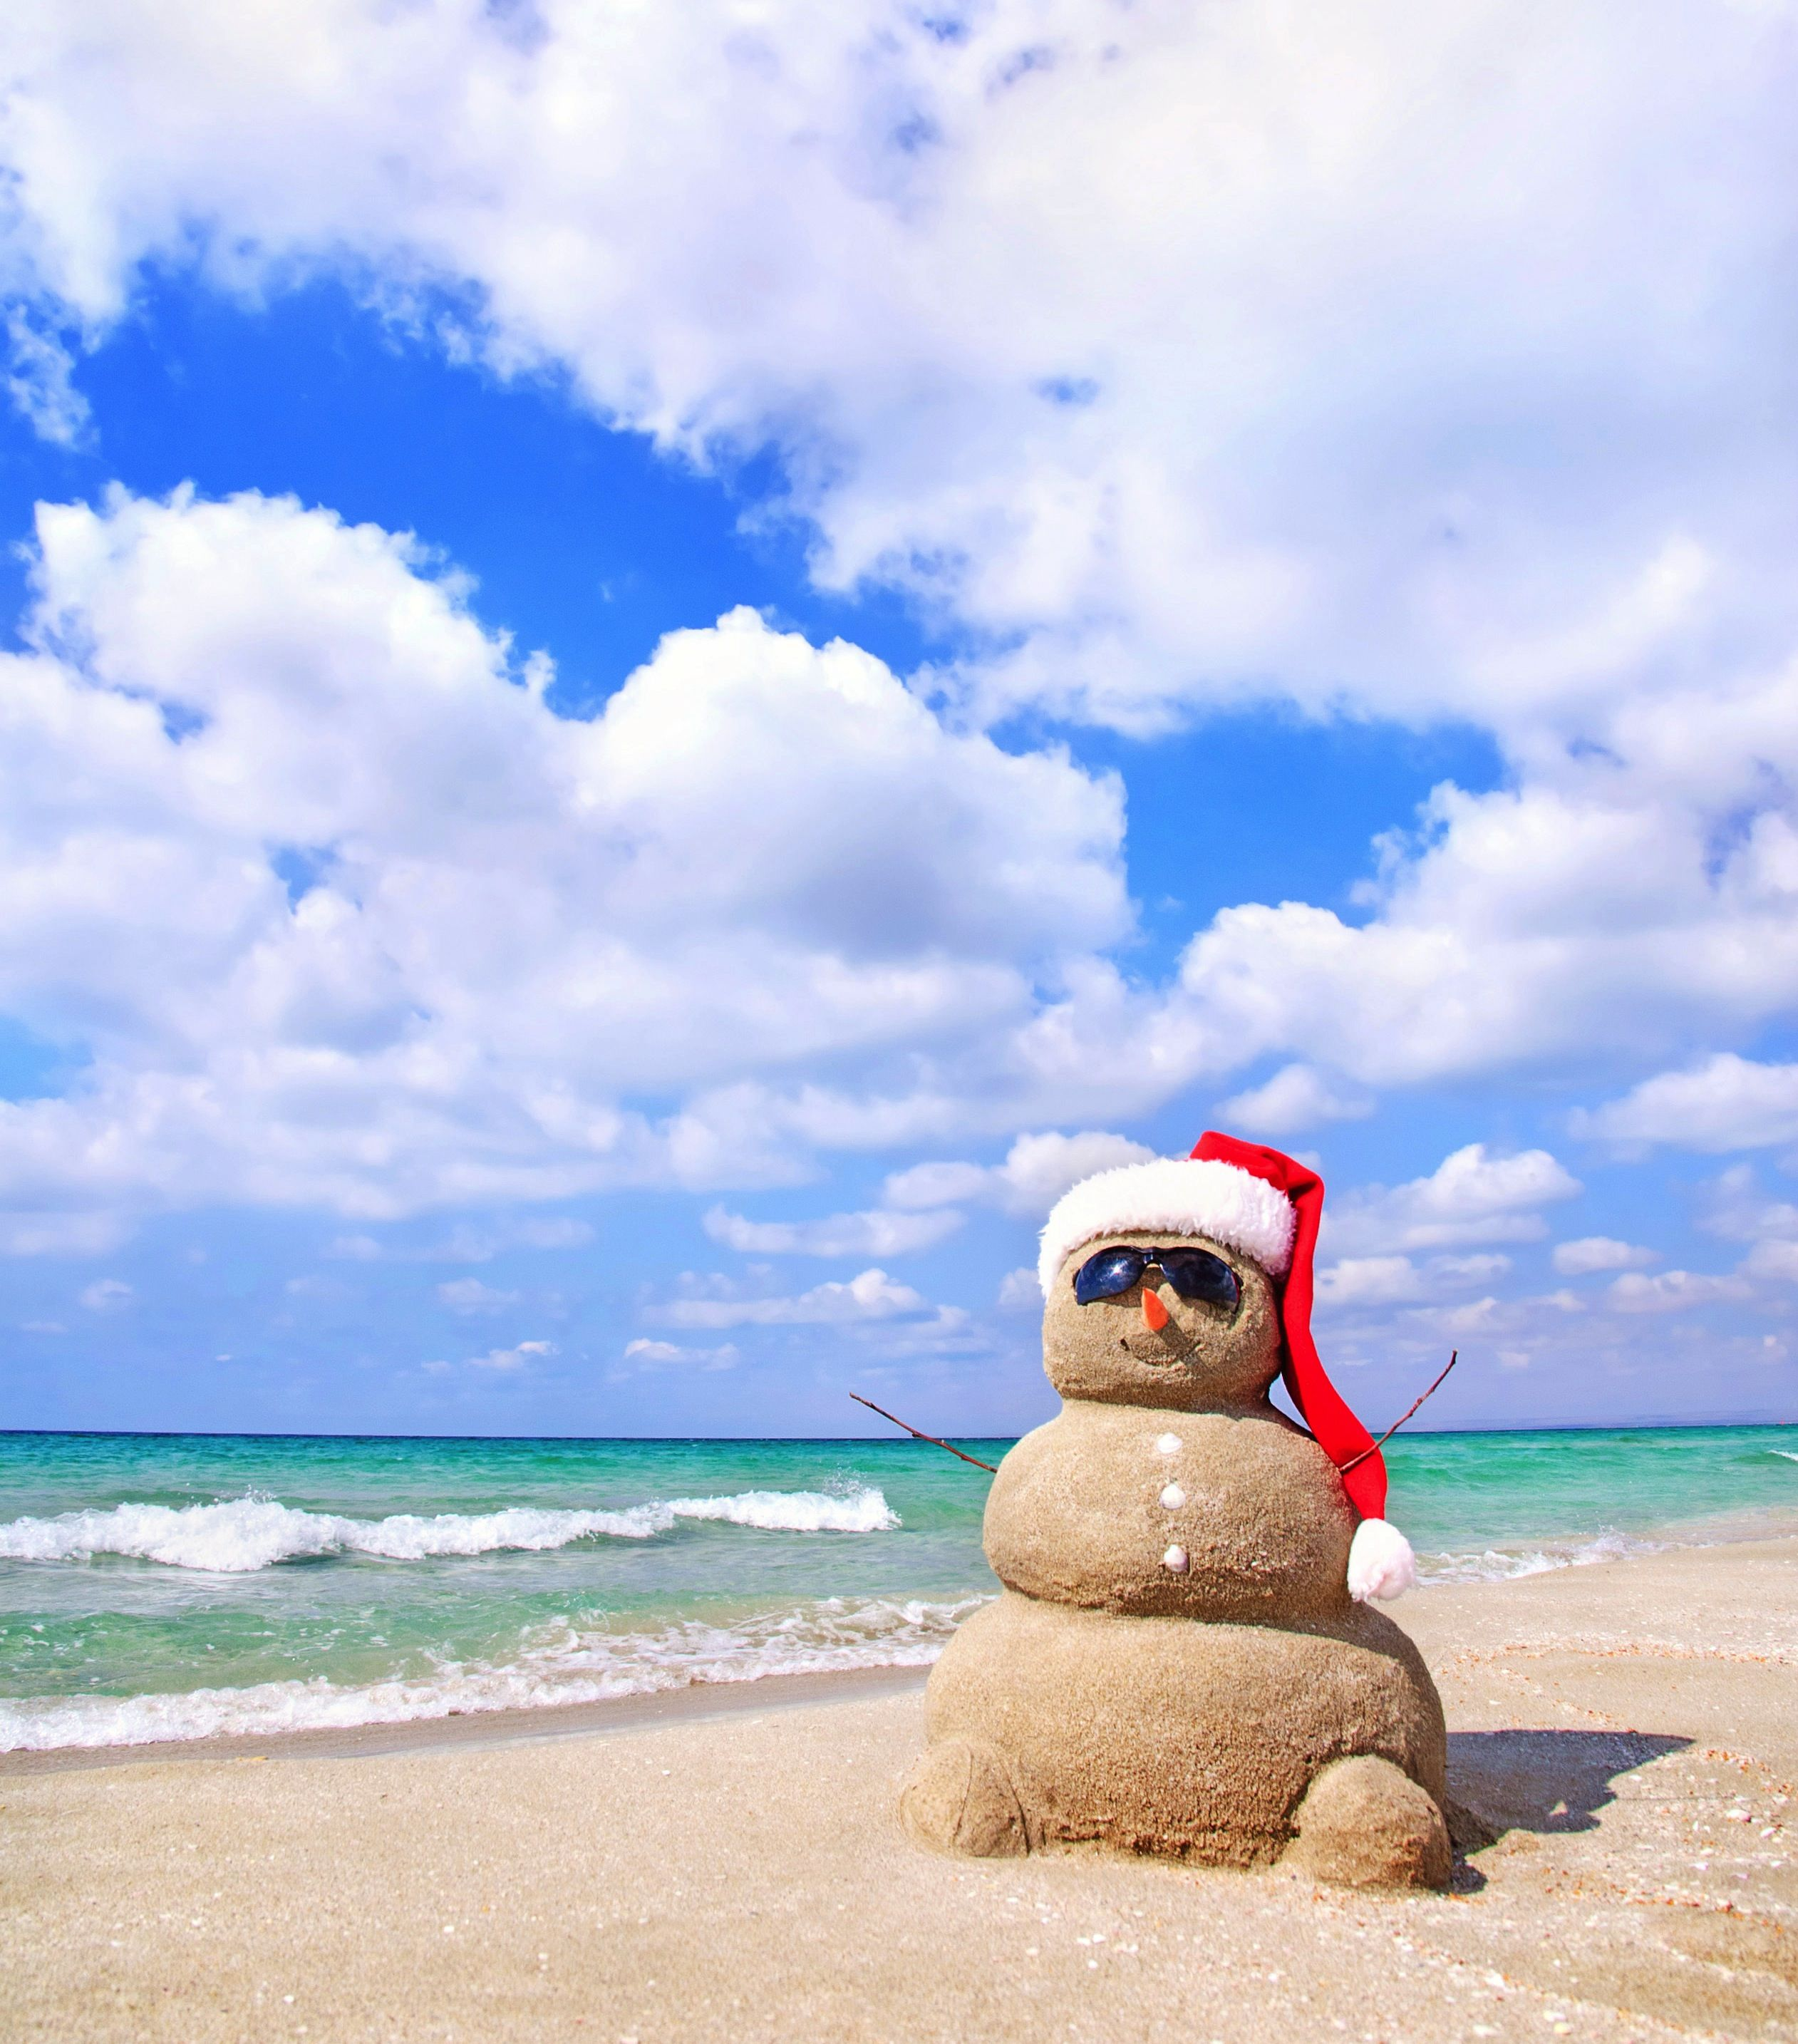 Frosty's cousin, Sandy, chillin' at the beach. #CheapCaribbean